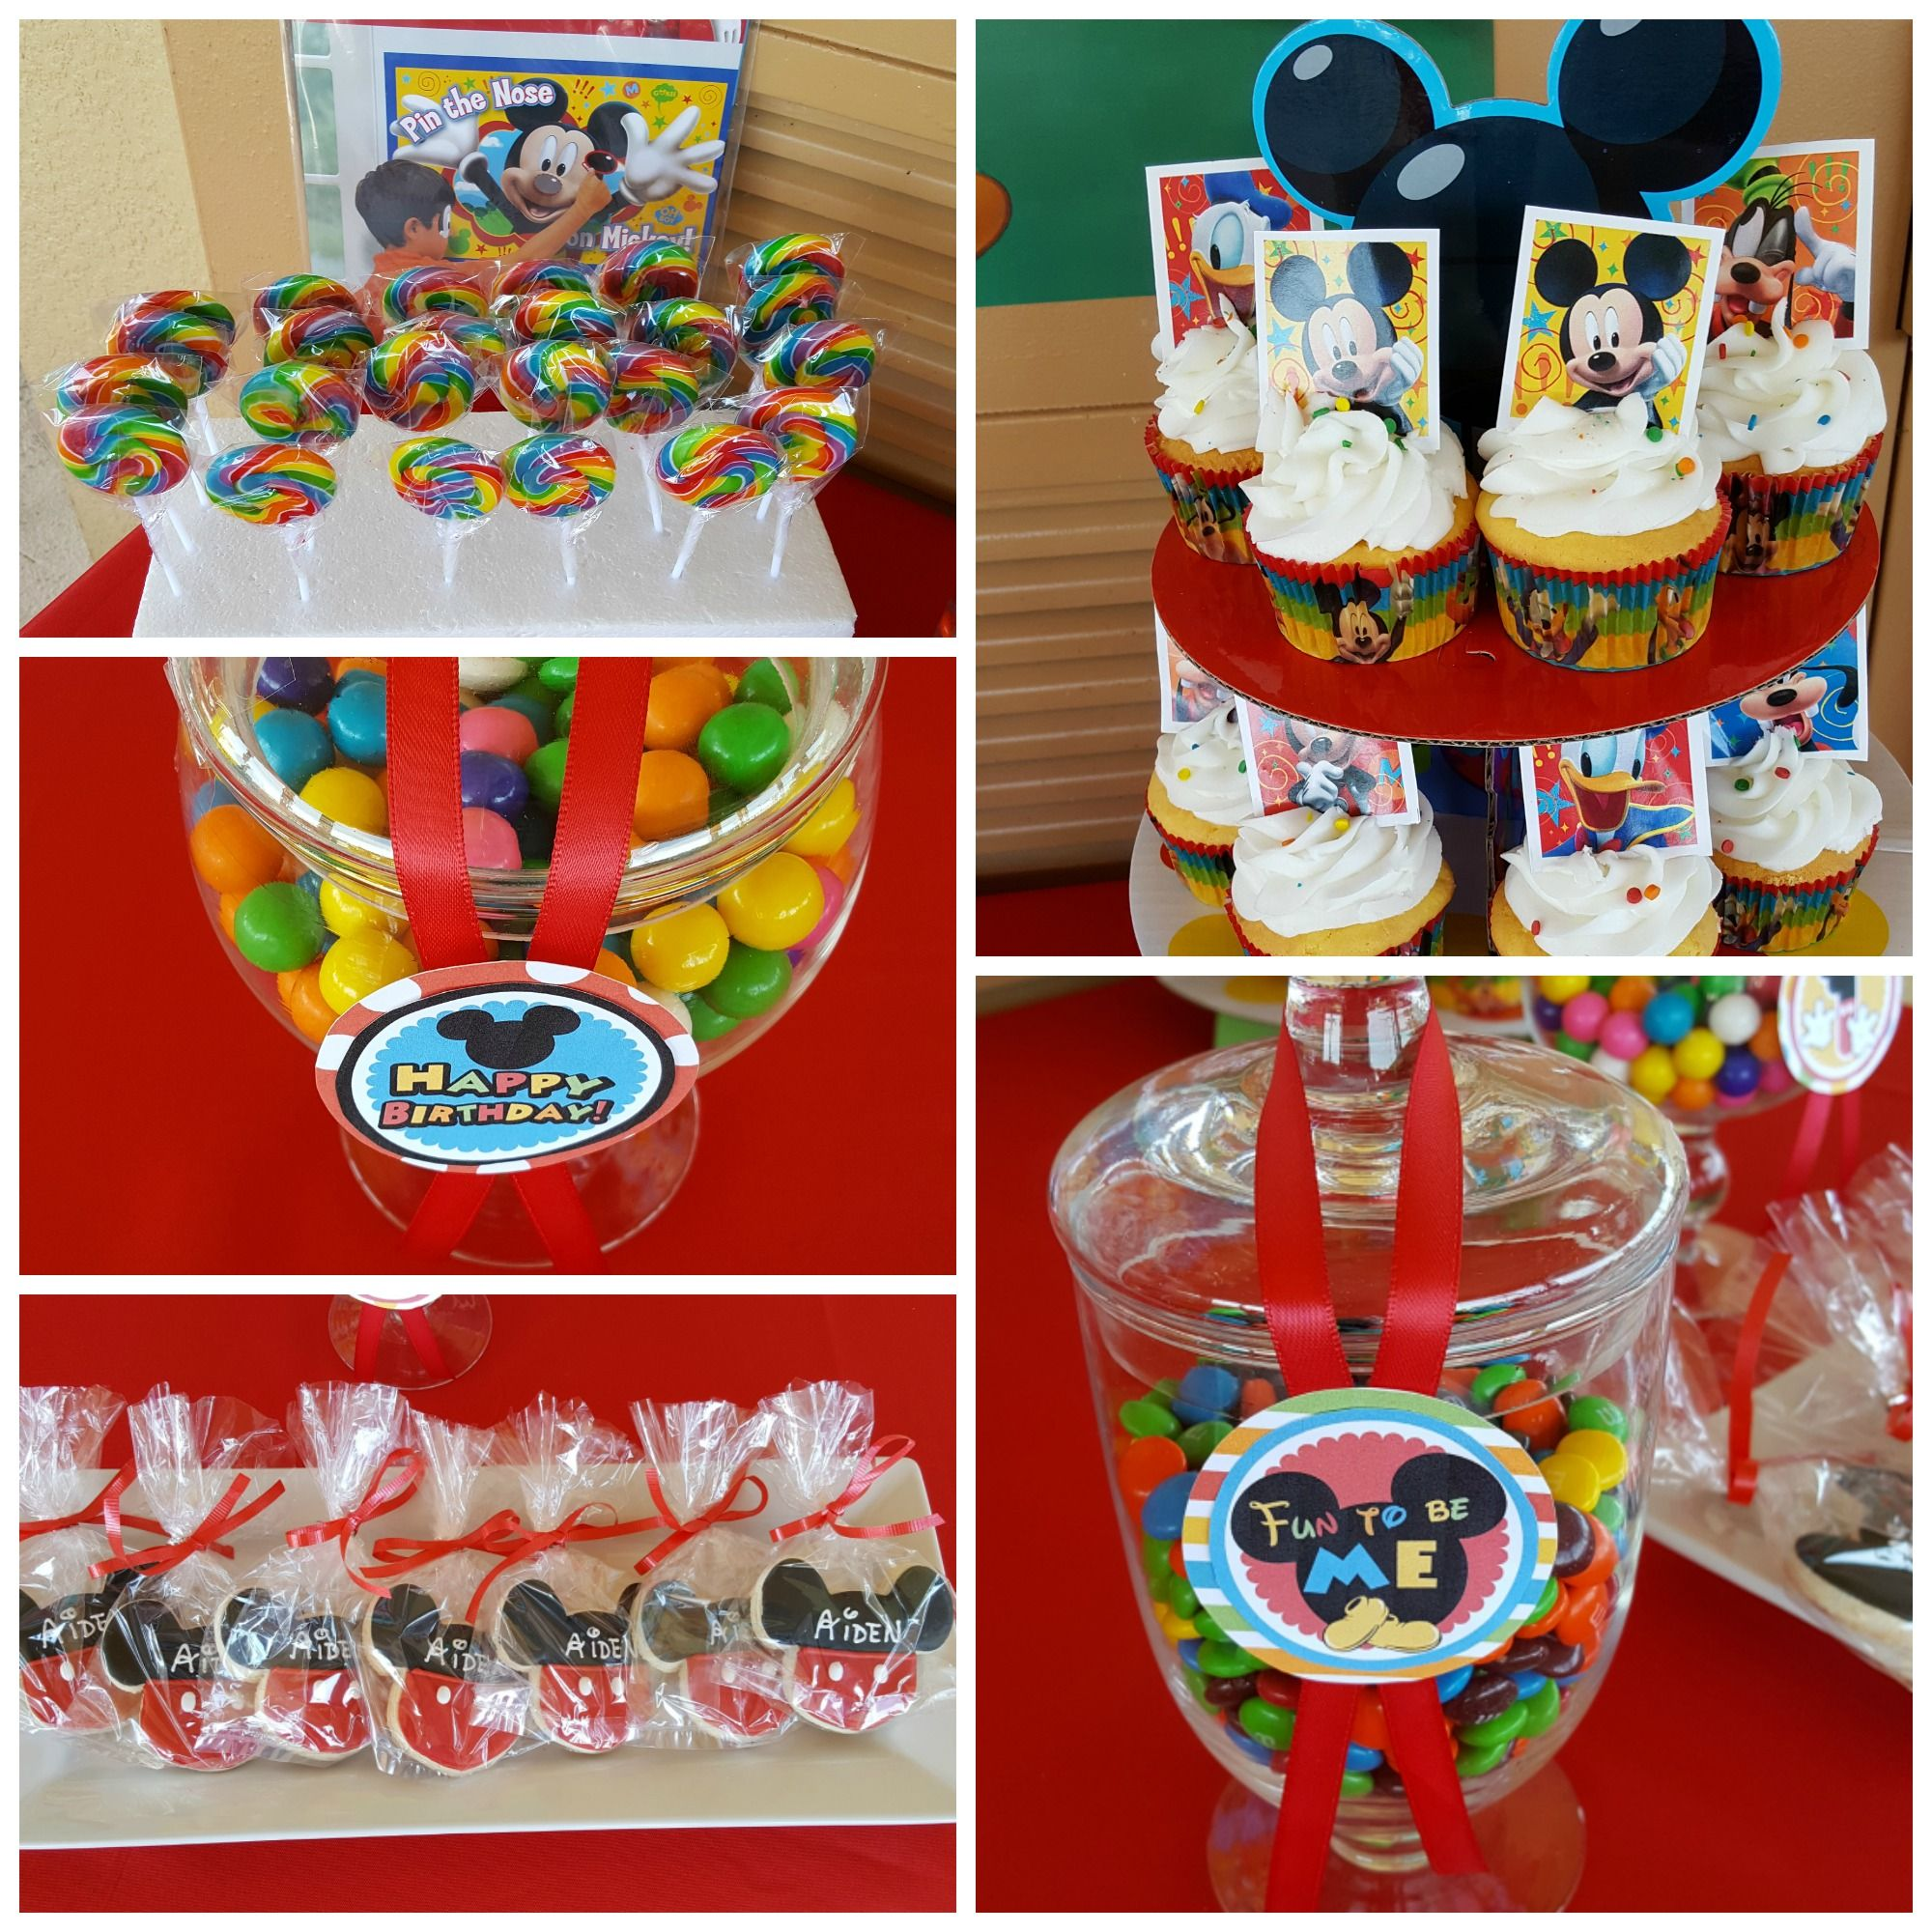 Mickey Mouse Club House Themed Candy Buffet Table Aiden S 1st Birthday Orlando Fl Milestone Birthday Party Birthday Party Rentals Orlando Wedding Planner